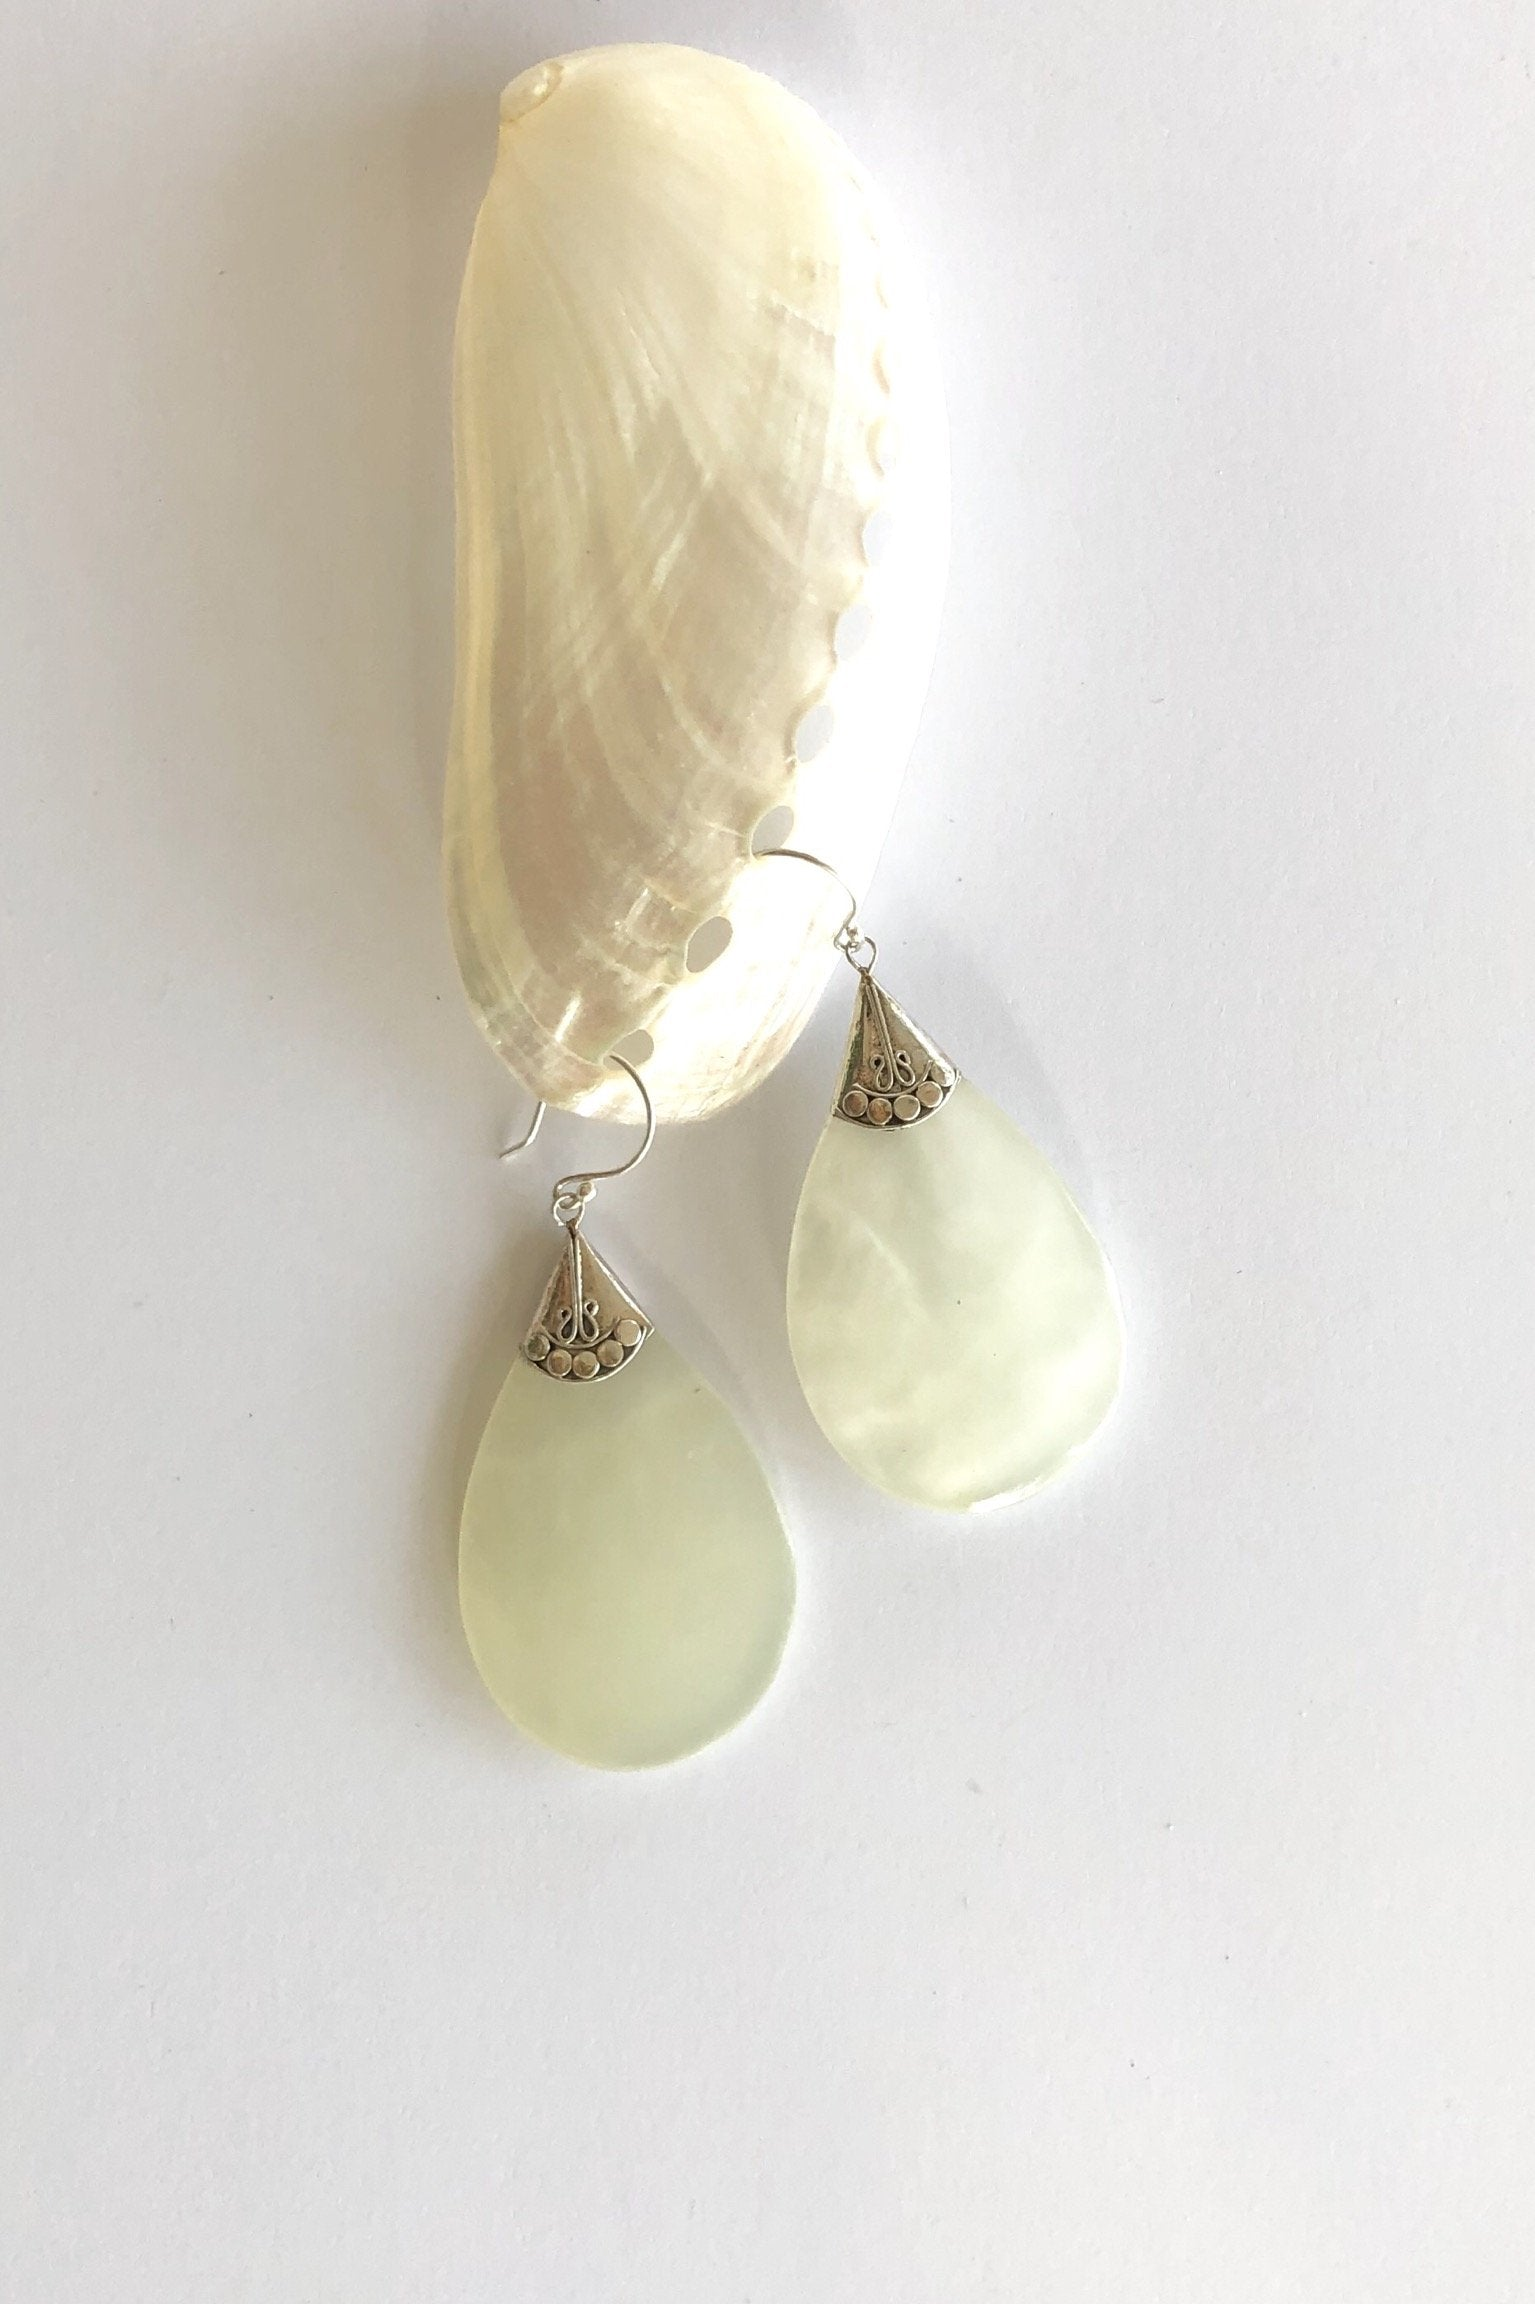 Mother of Pearl teardrop style earrings with 925 solid silver detailing.